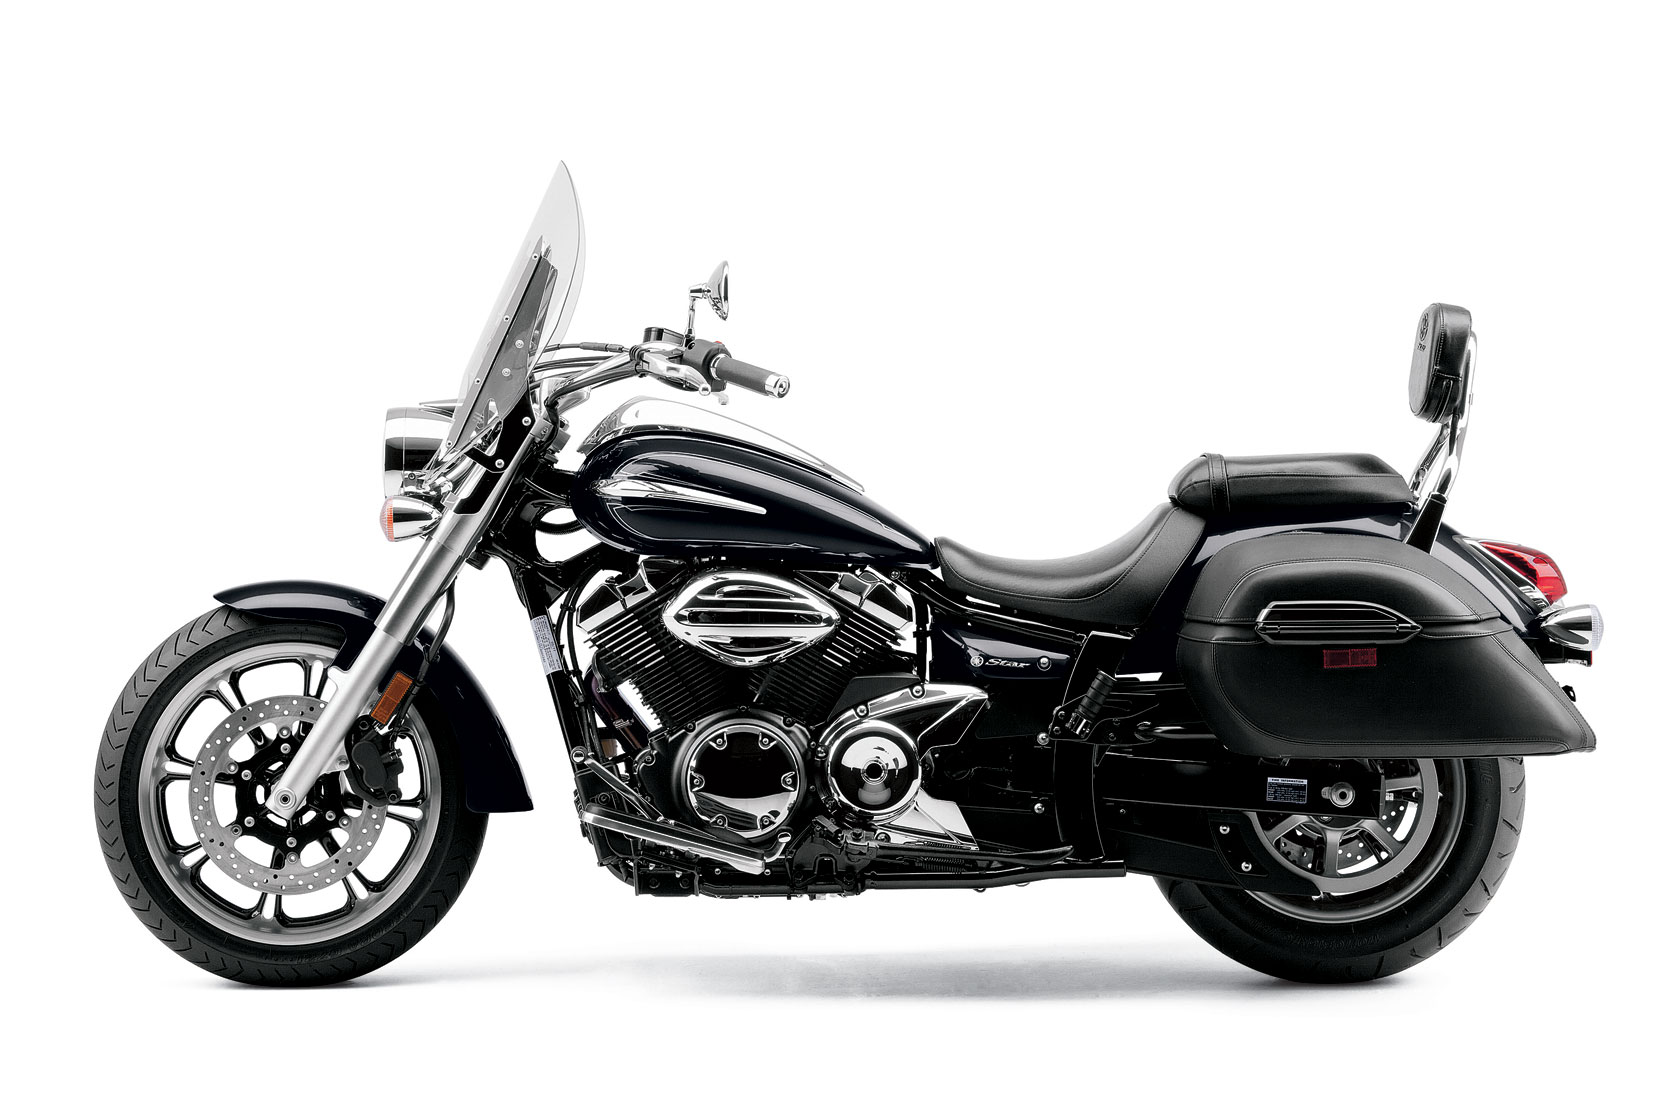 Yamaha V Star 950 Tourer 2012 #1